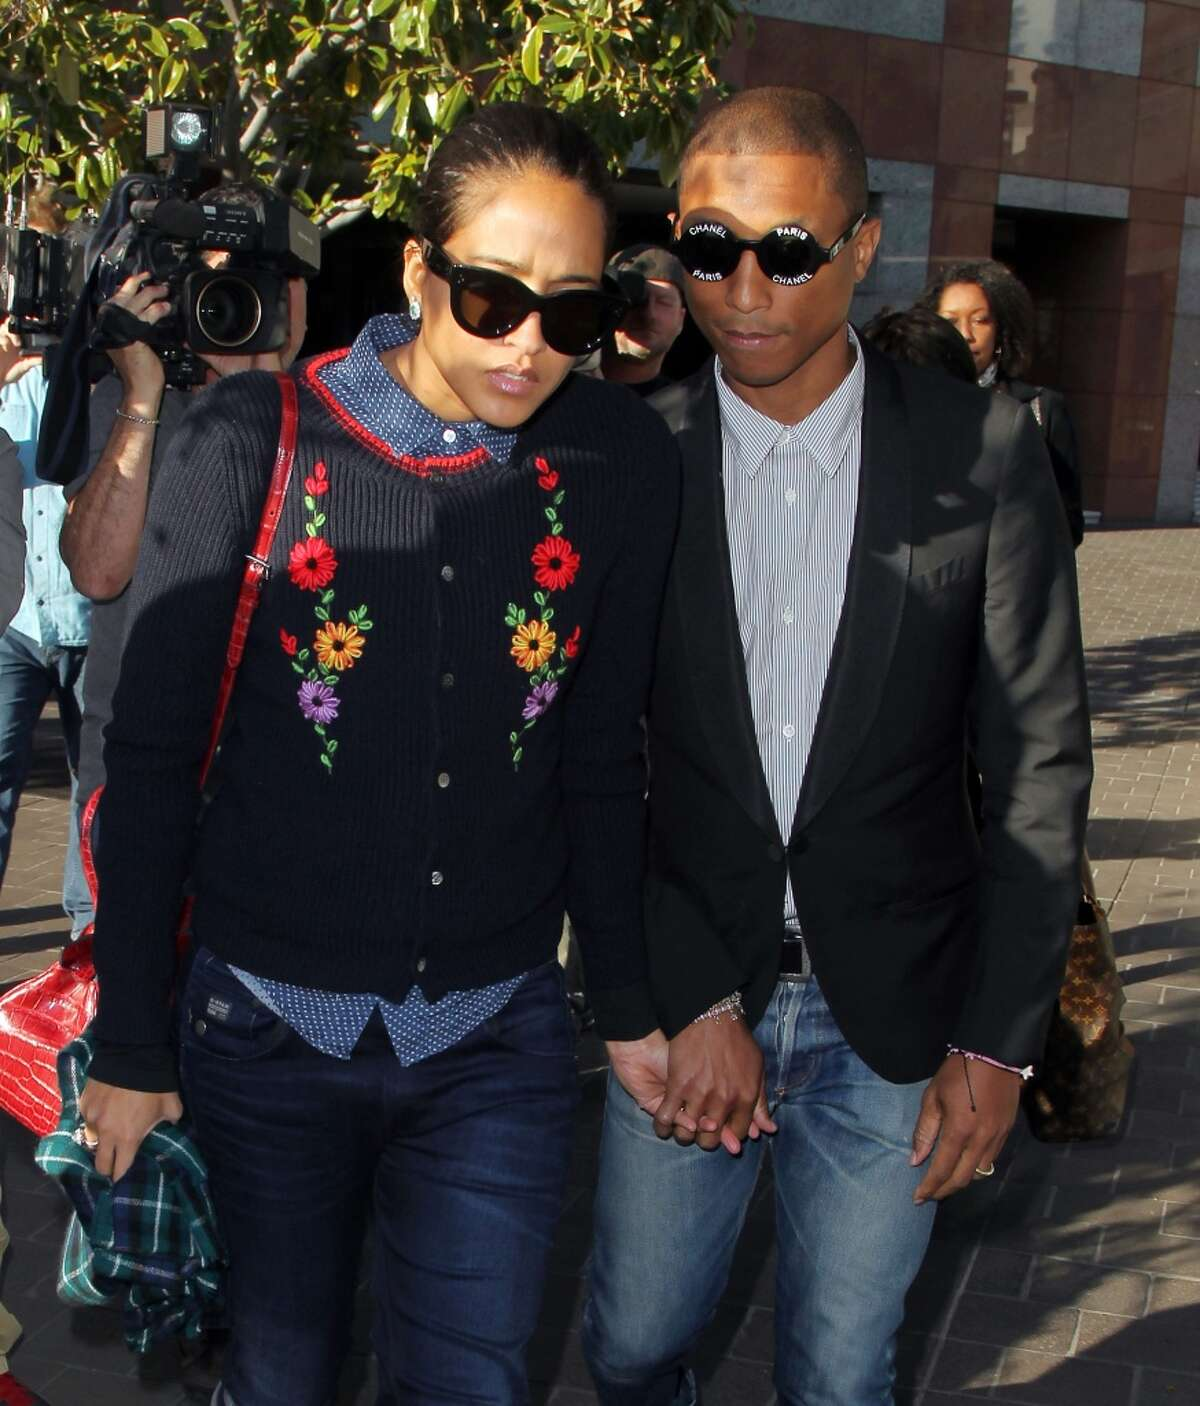 """Musician Pharrell Williams and his wife Helen Lasichanh are seen outside the Roybal Federal Building on March 5, 2015 in Los Angeles, California. Williams and co-writers of the song """"Blurred Lines"""" are being sued by the children of singer Marvin Gaye for using elements of Gaye's song """"Got to Give it Up"""" in """"Blurred Lines."""""""